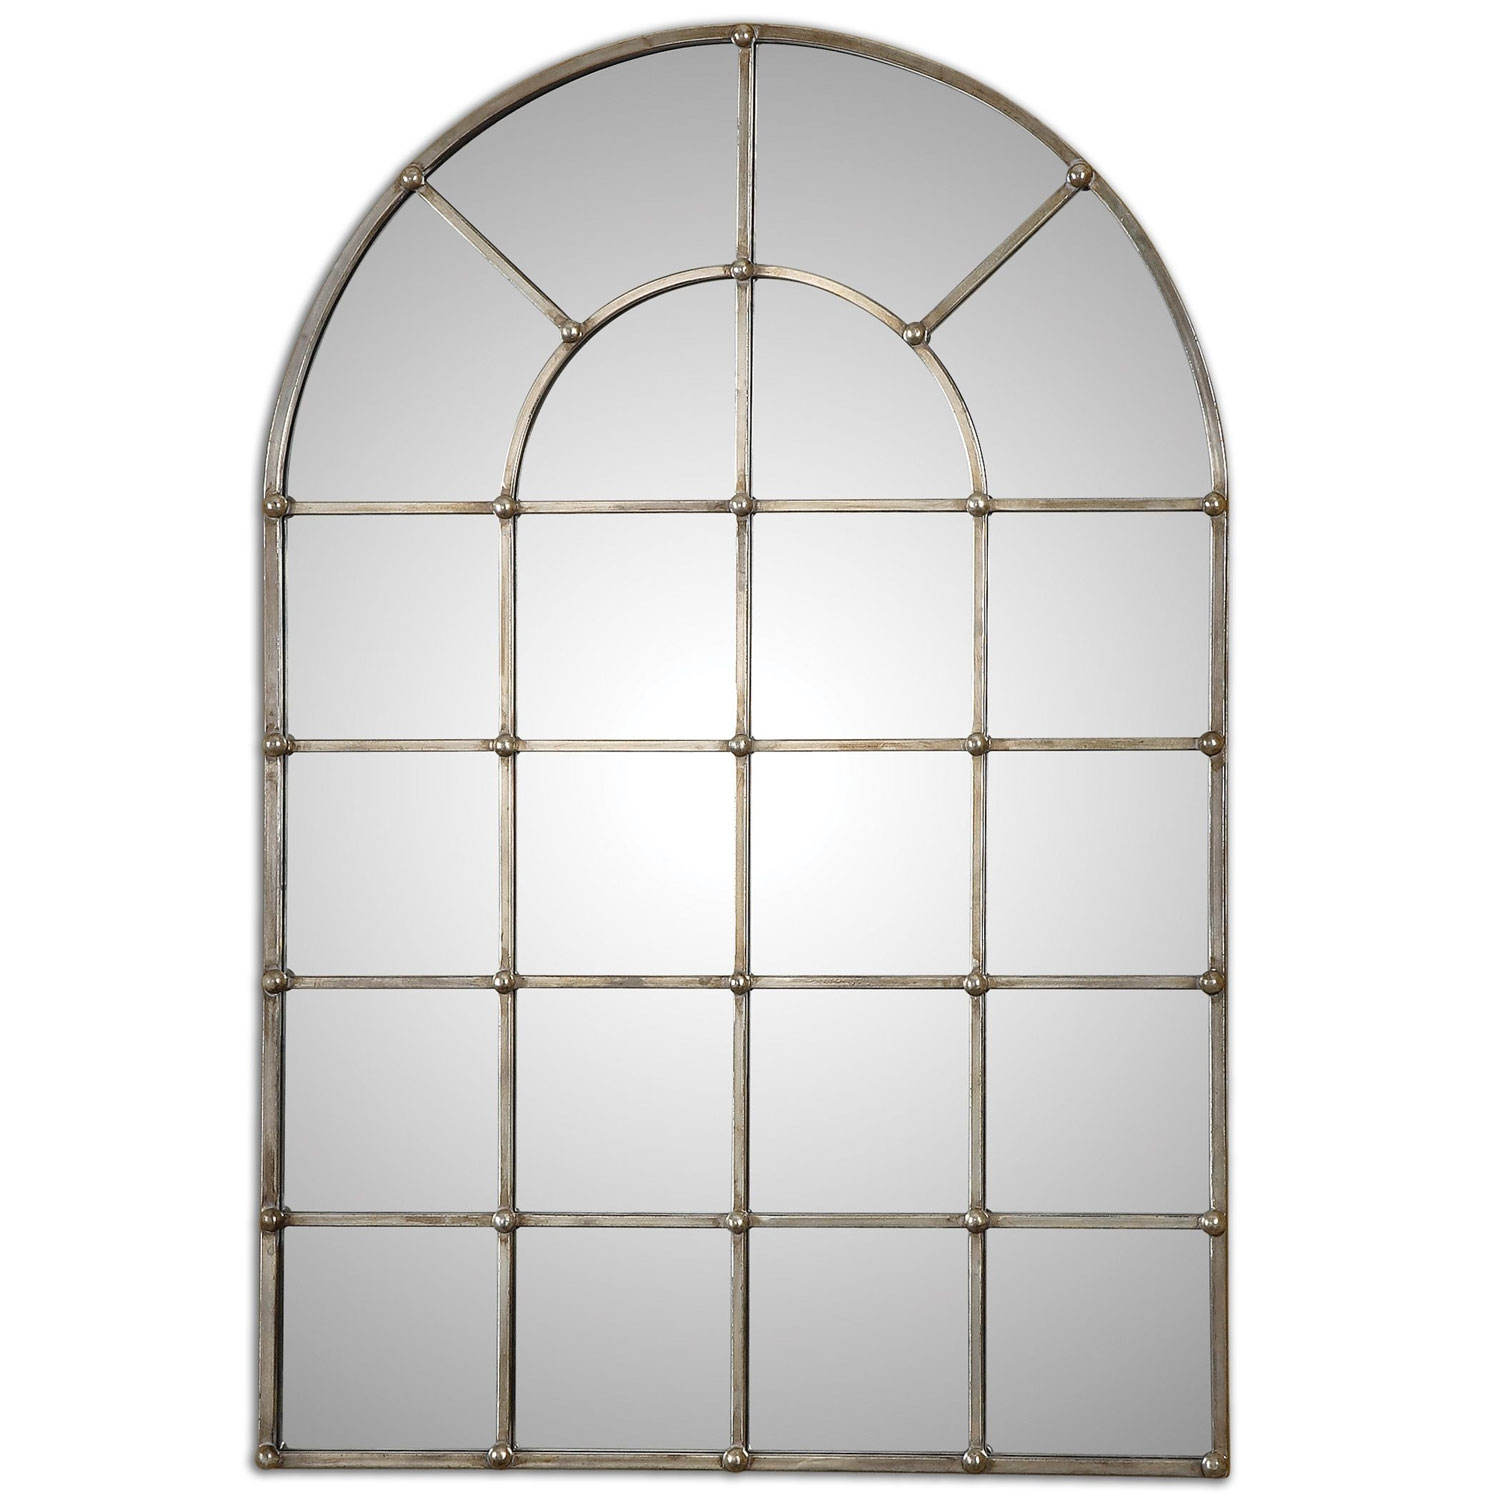 Modest Design Arched Wall Mirror Pretty Ideas Arch Mirrors On With Regard To Arched Wall Mirror (View 3 of 15)